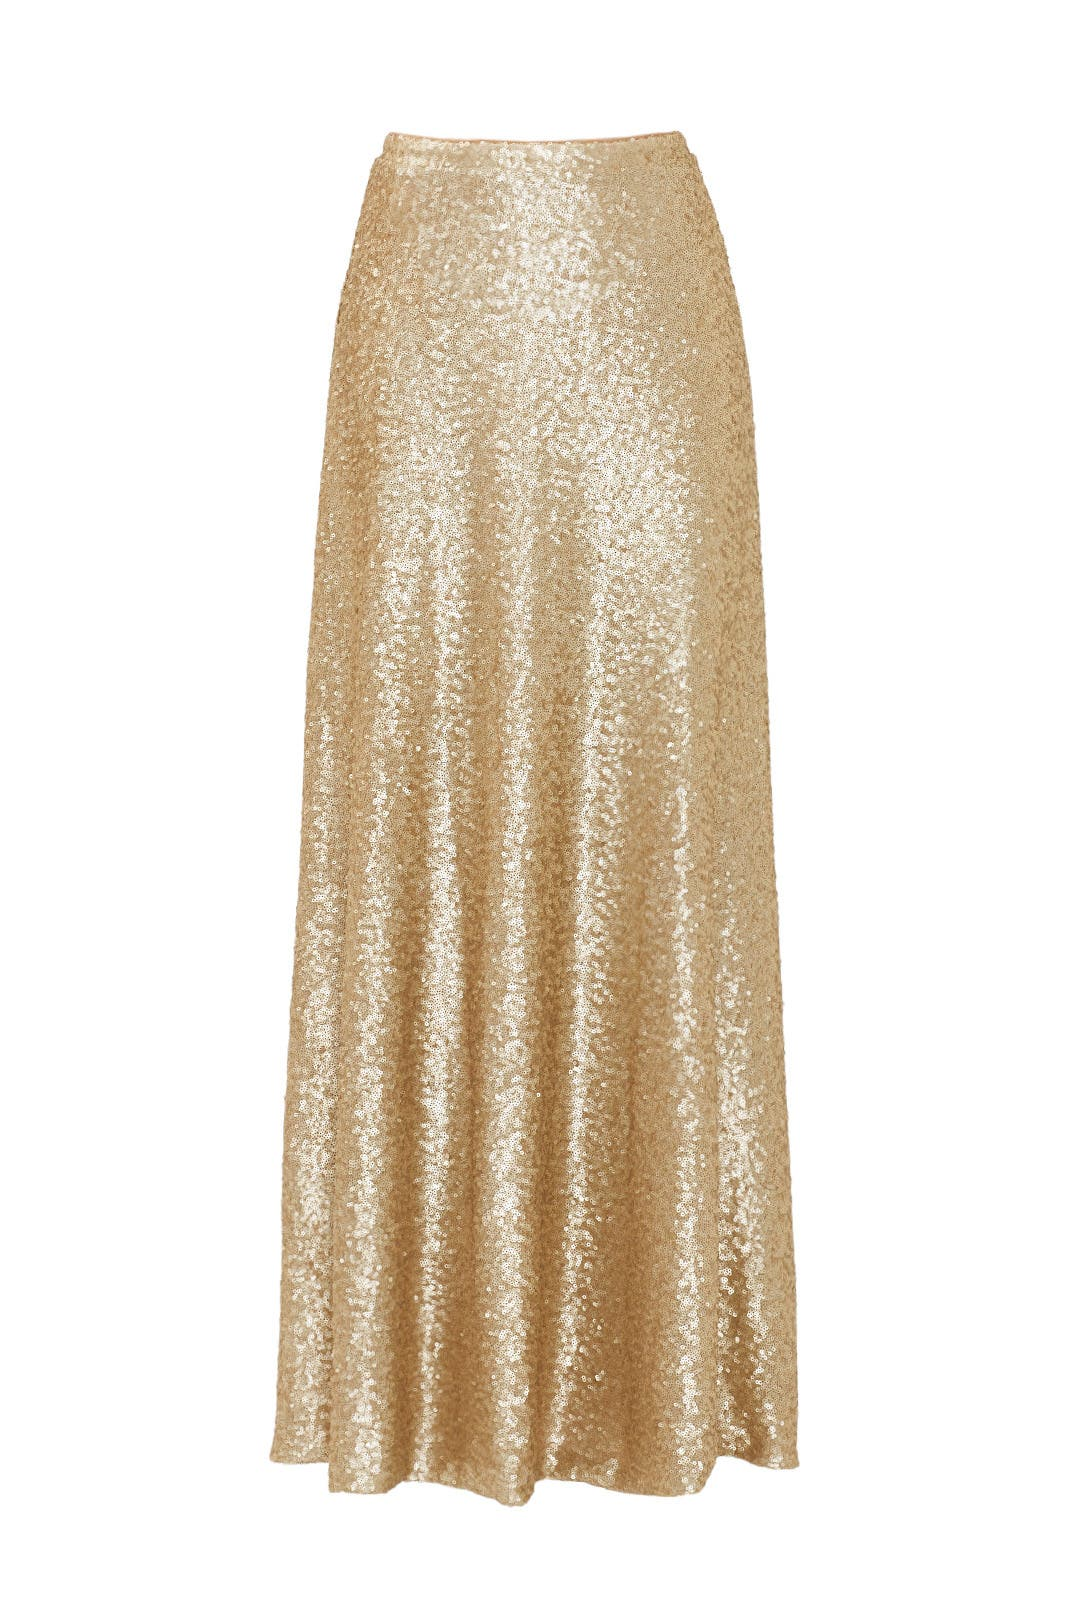 Gold Cecilia Maxi Skirt by Slate & Willow for $30 - $50 | Rent the ...